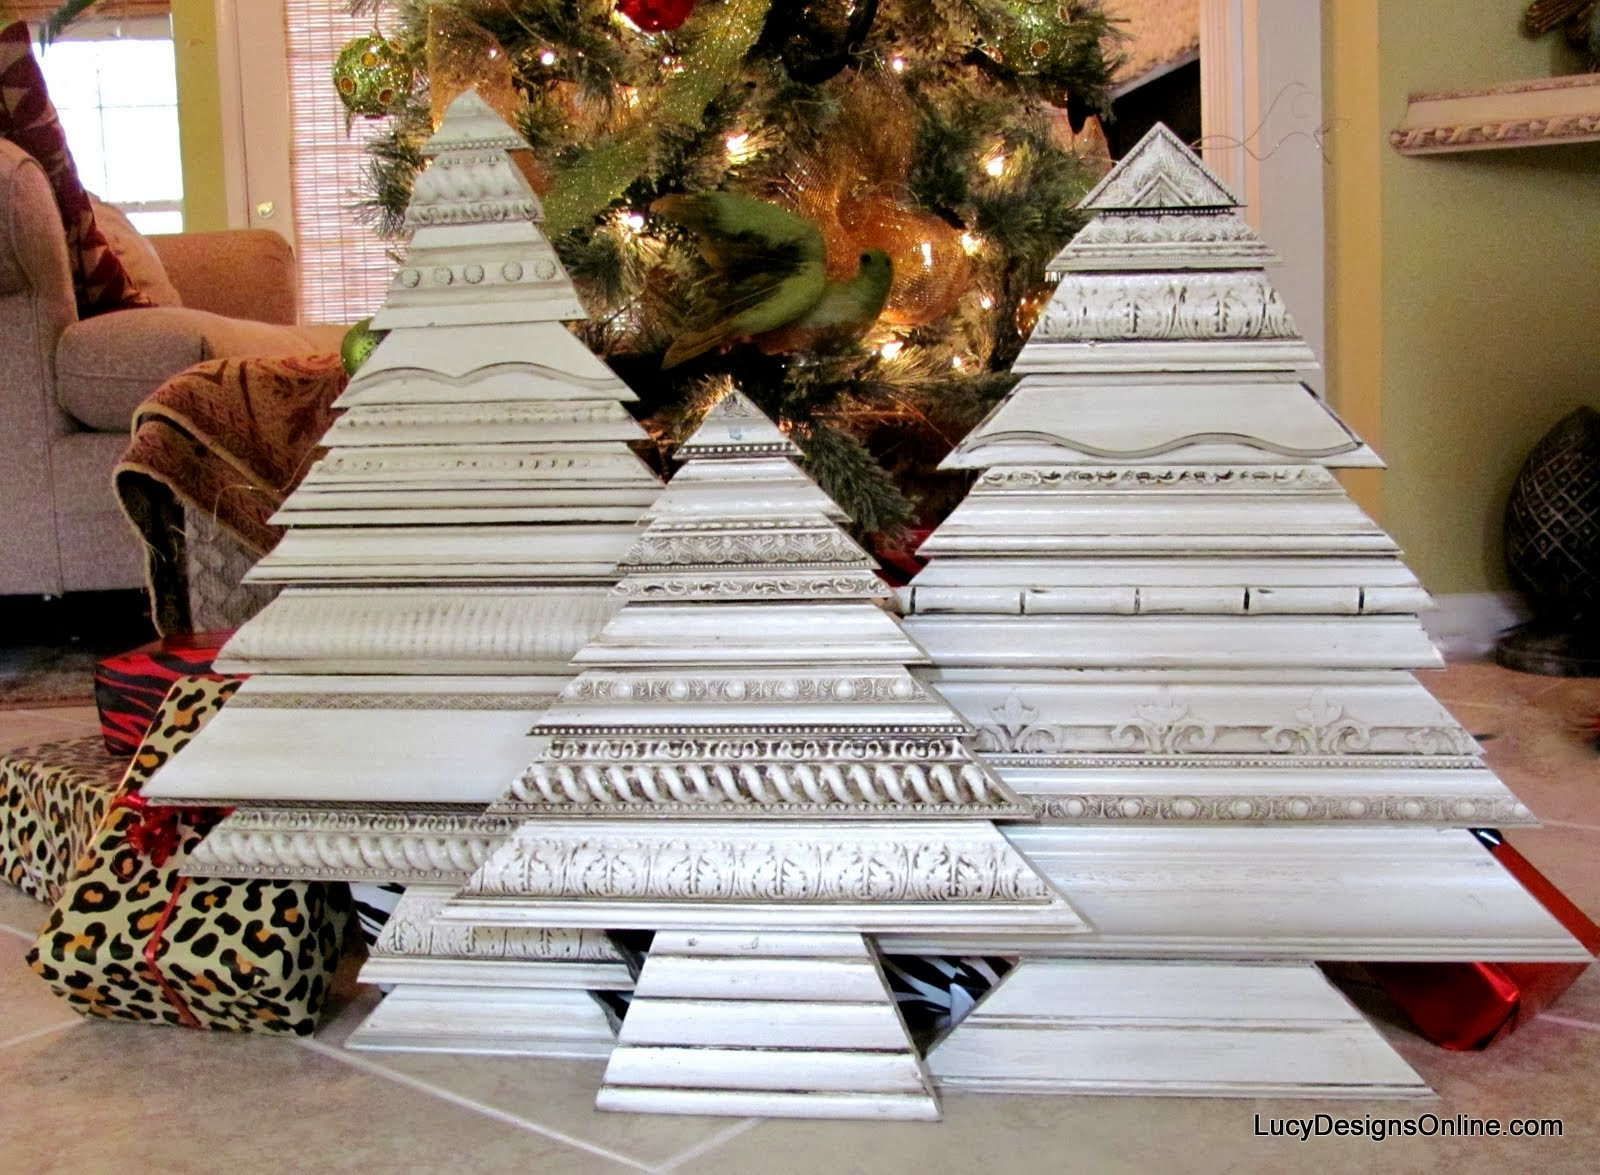 Molding Christmas Tree Sculptures Using Re Purposed Recycled